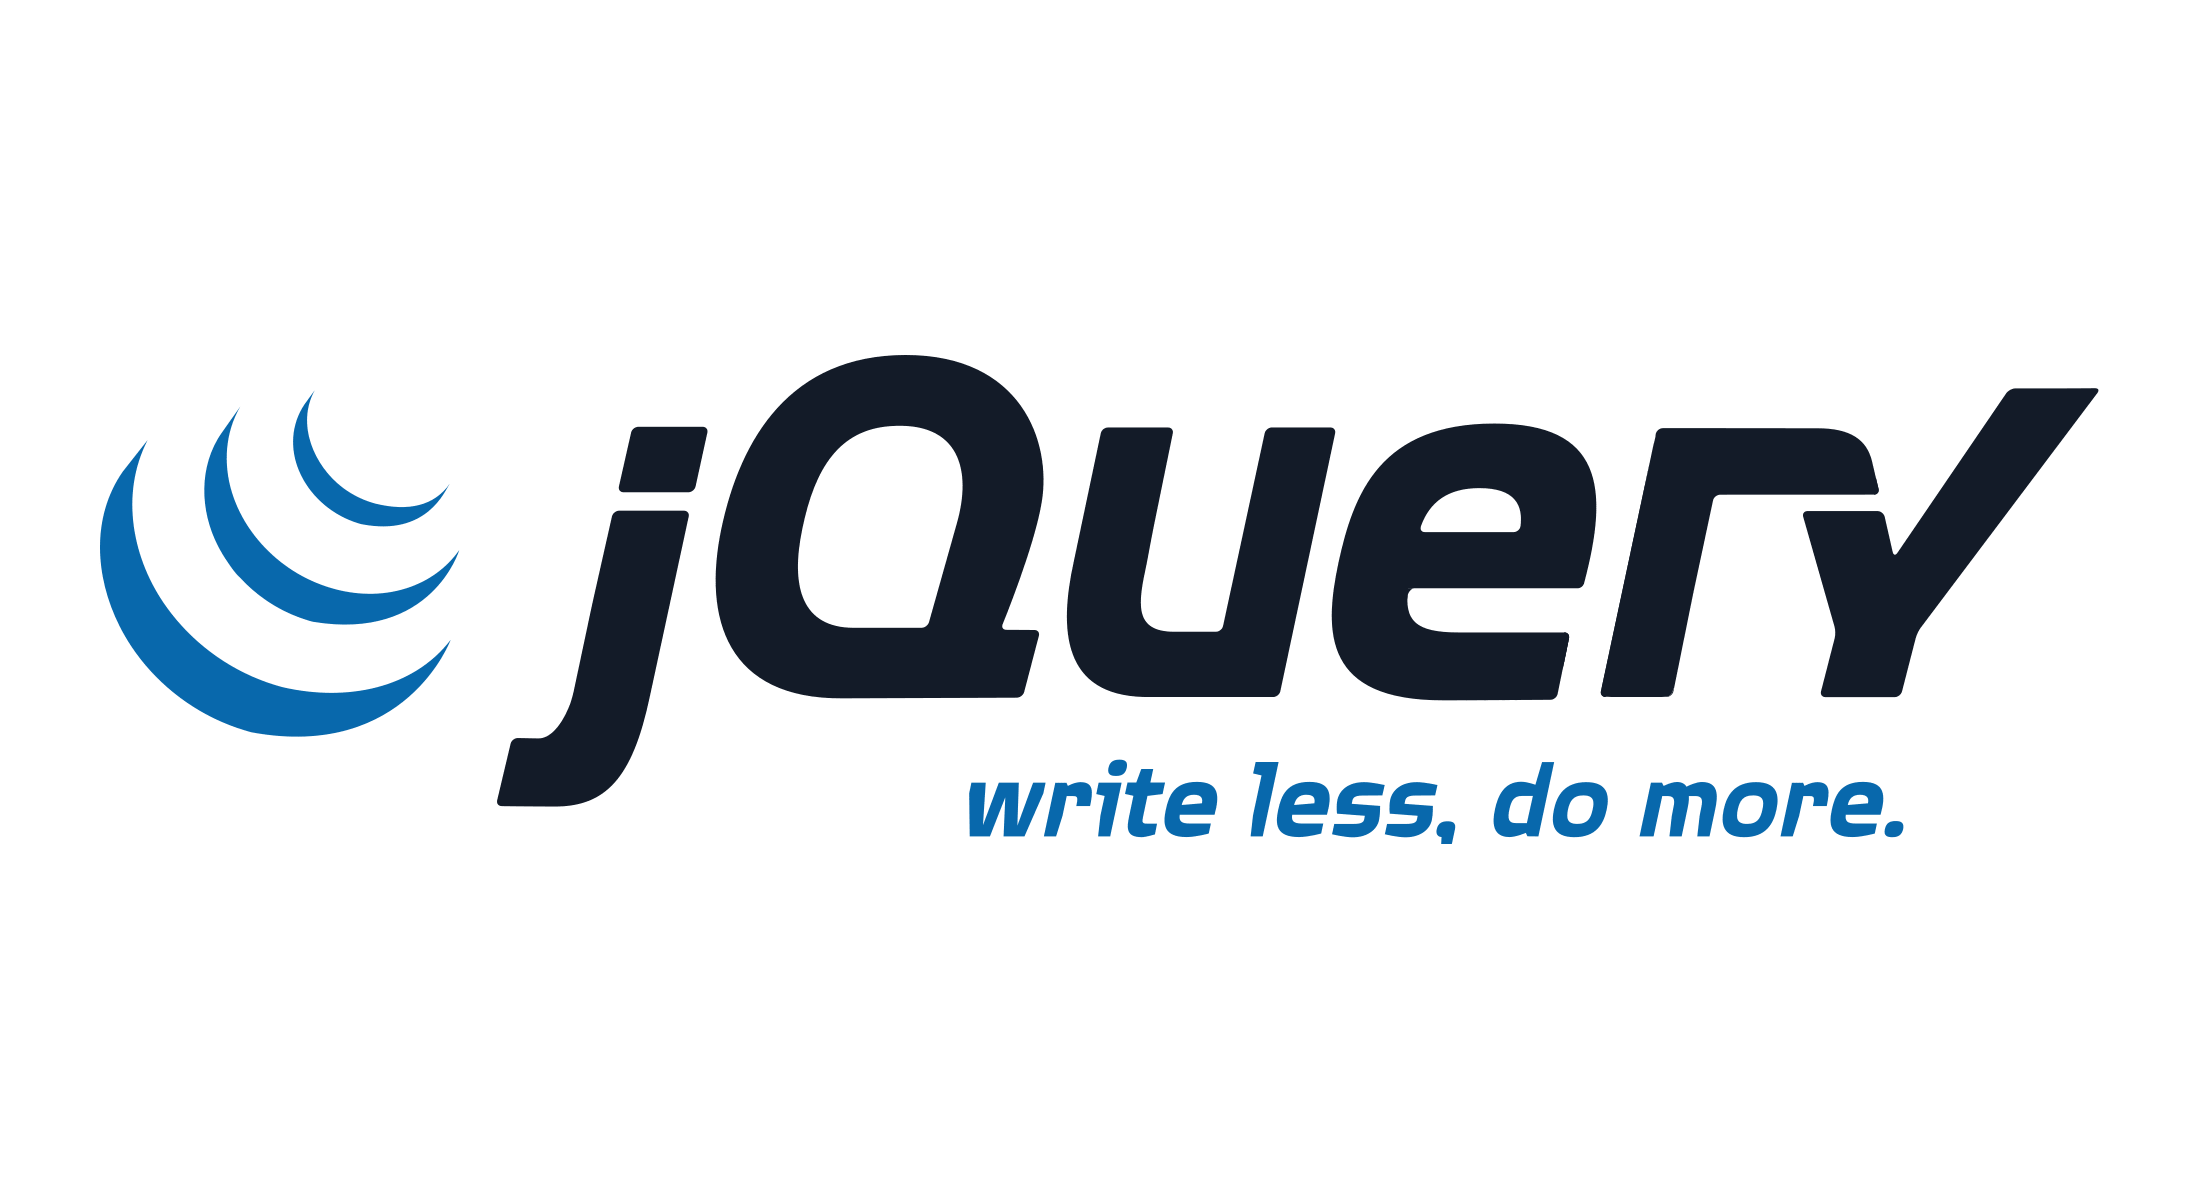 jQuery Digitalizandote